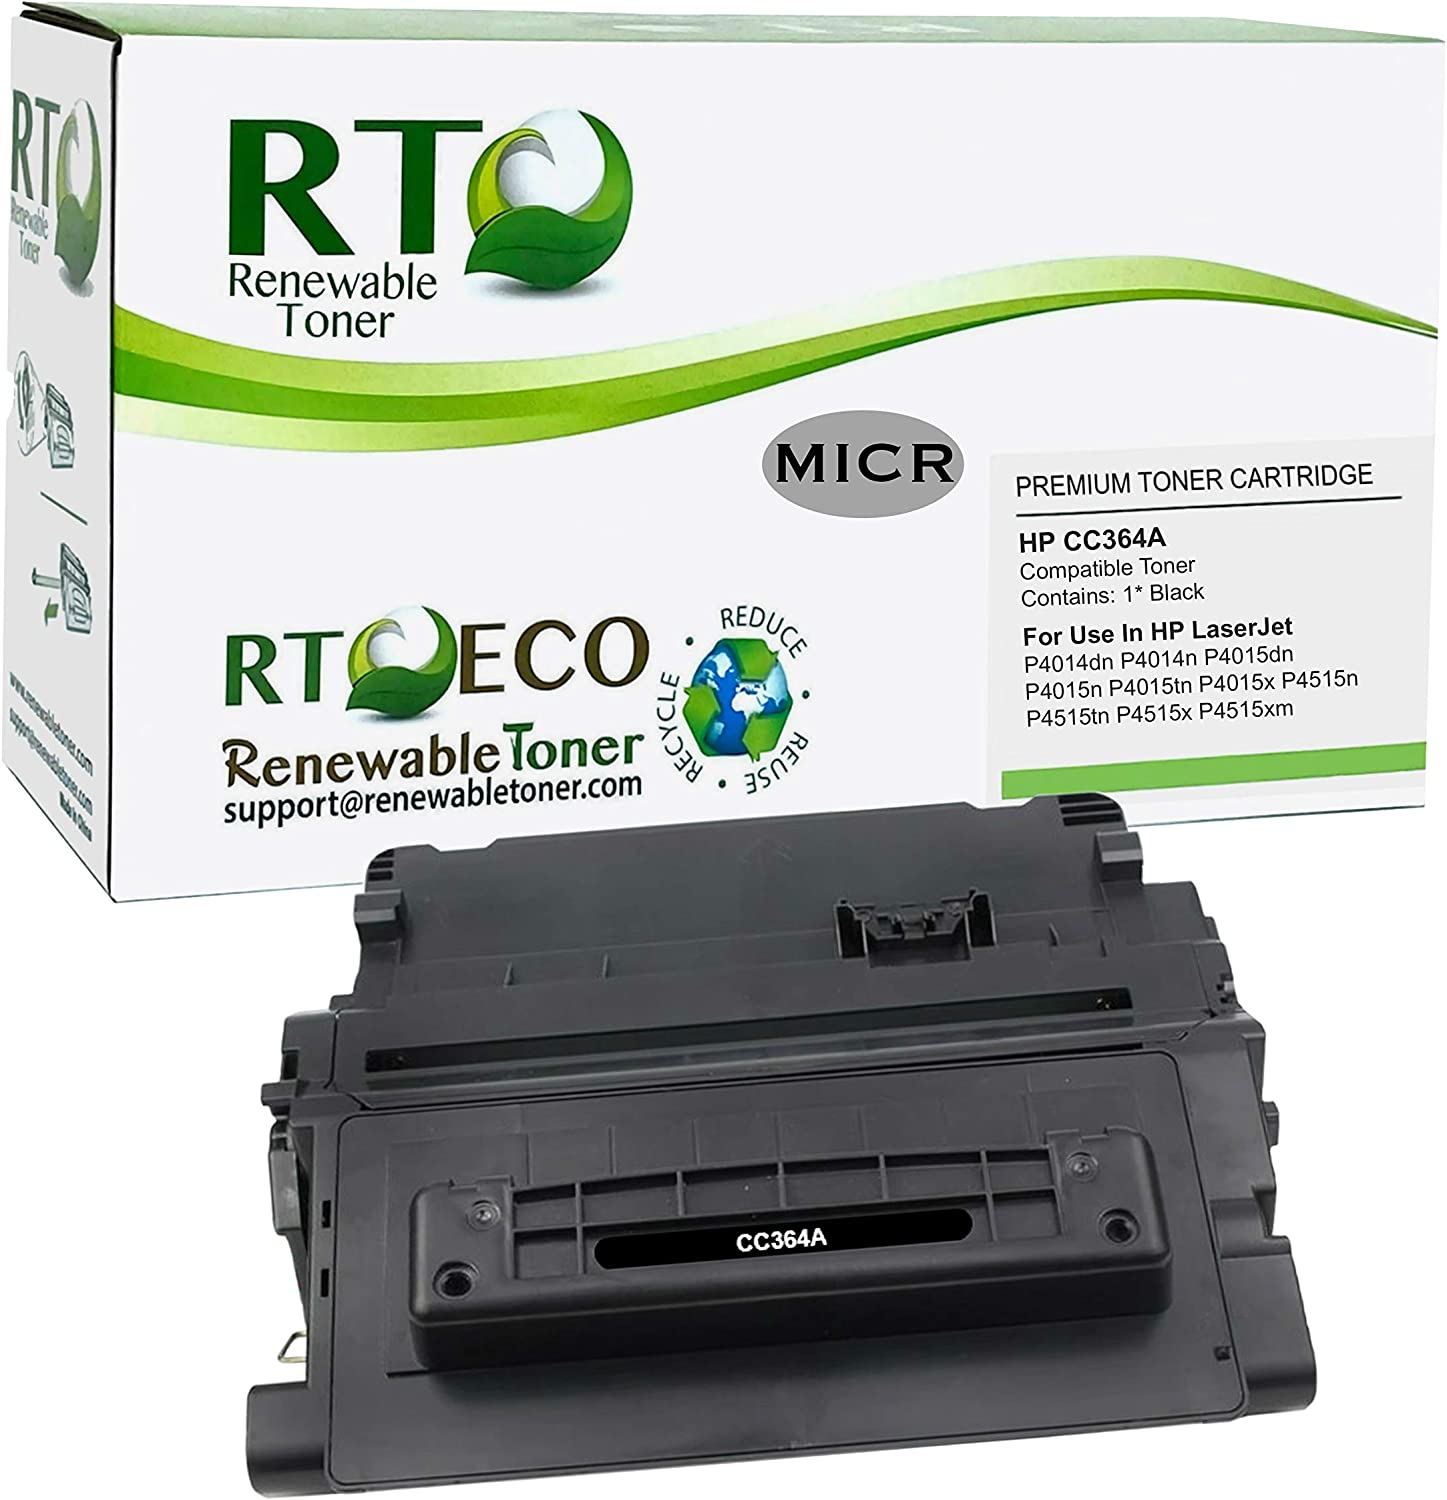 Renewable Toner Compatible MICR Toner Cartridge Replacement for HP CC364A 64A Laserjet P4014 P4015 P4515